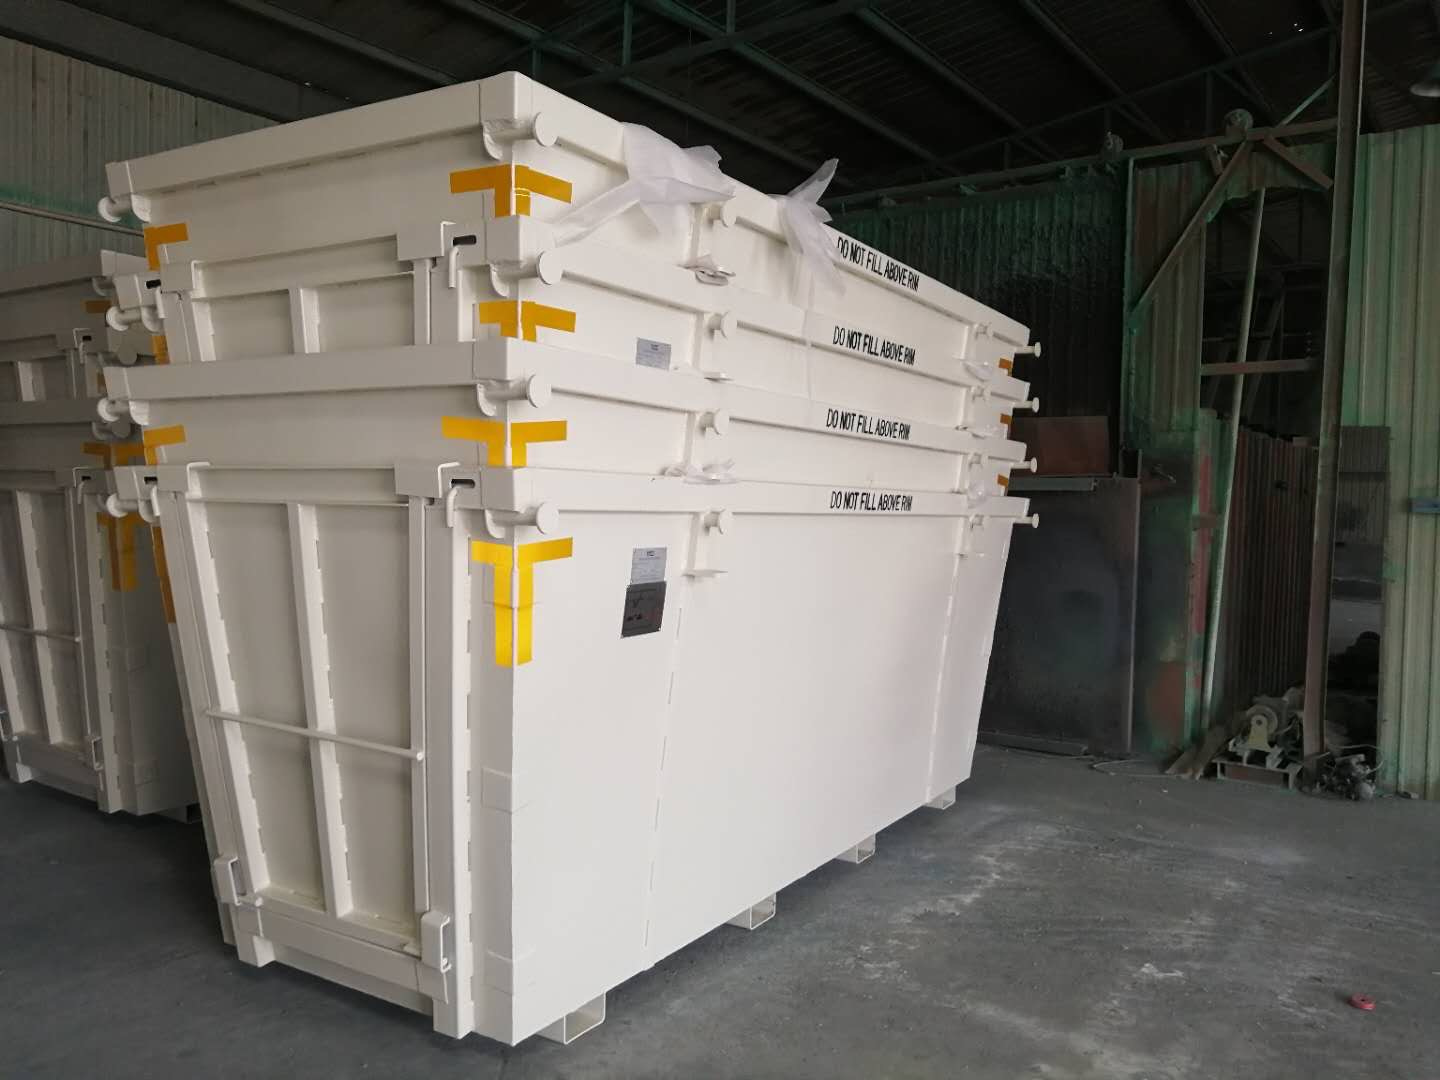 8m3 SKIP BINS HEAVY DUTY